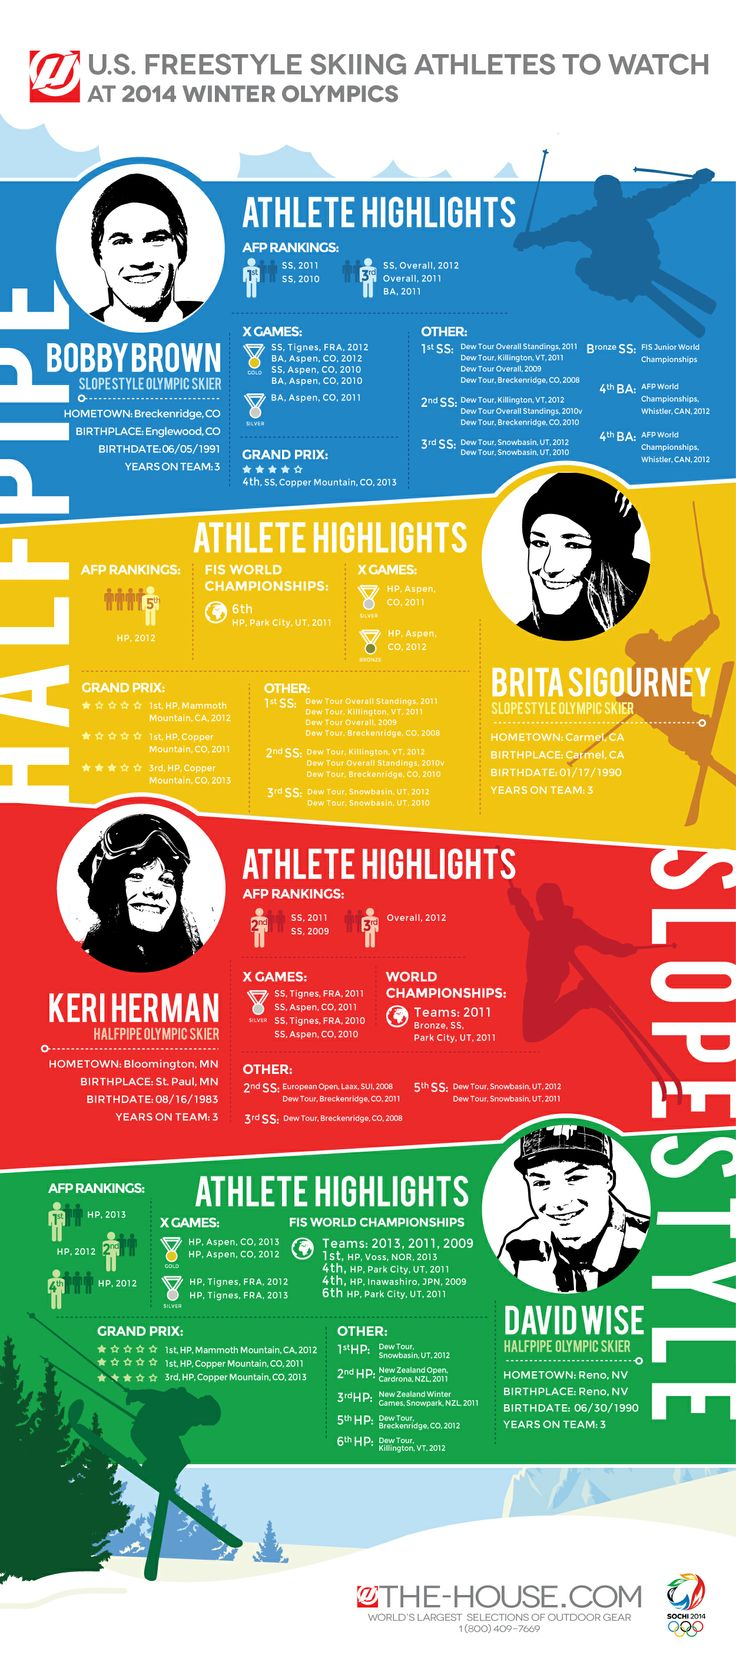 Here's a wonderful infographic of athletes to watch out for during this year's winter olympics.